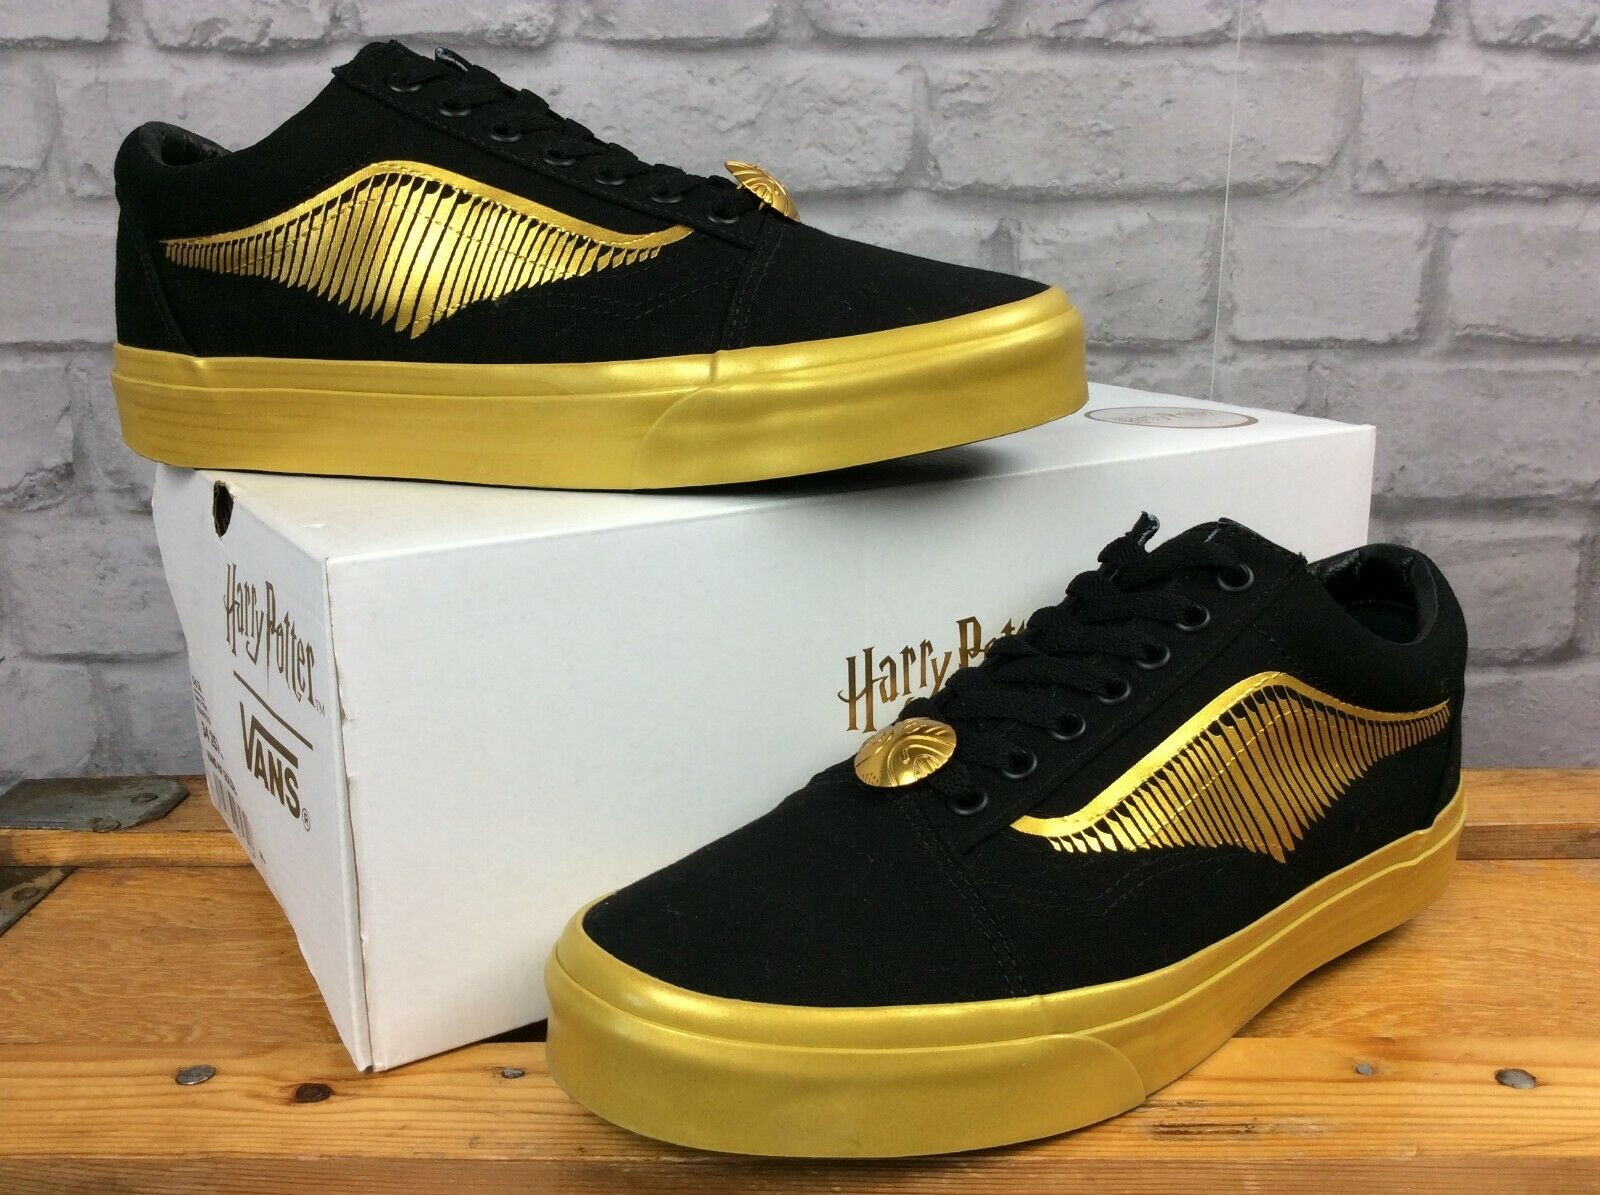 Vans Old Skool Harry Potter Golden Snitch